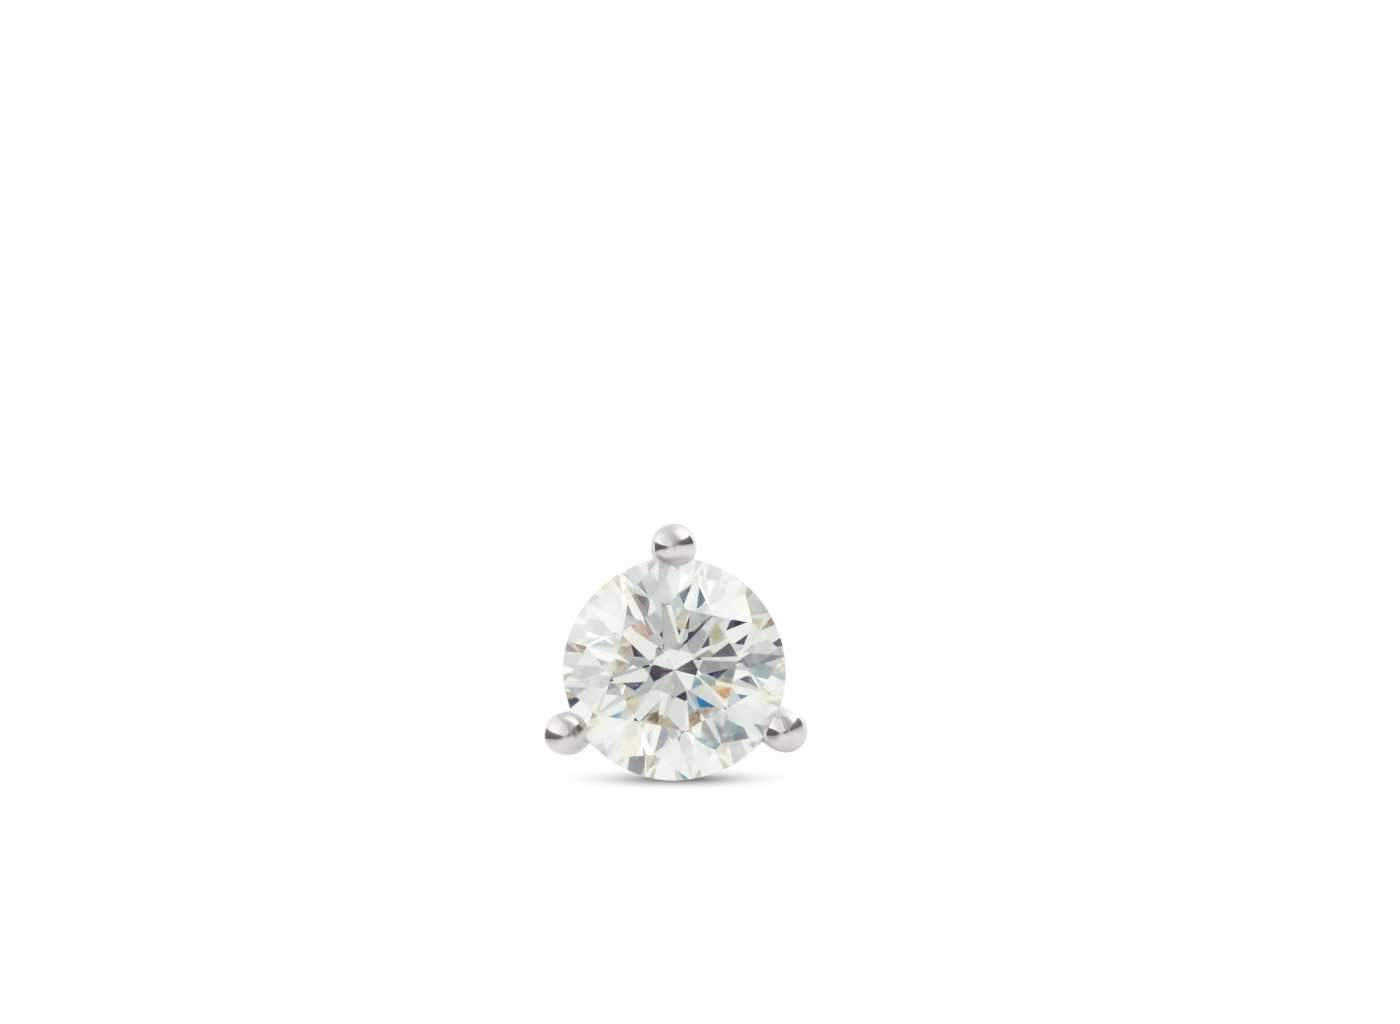 Front view of Solitaire 3/4 carat stud with white diamond